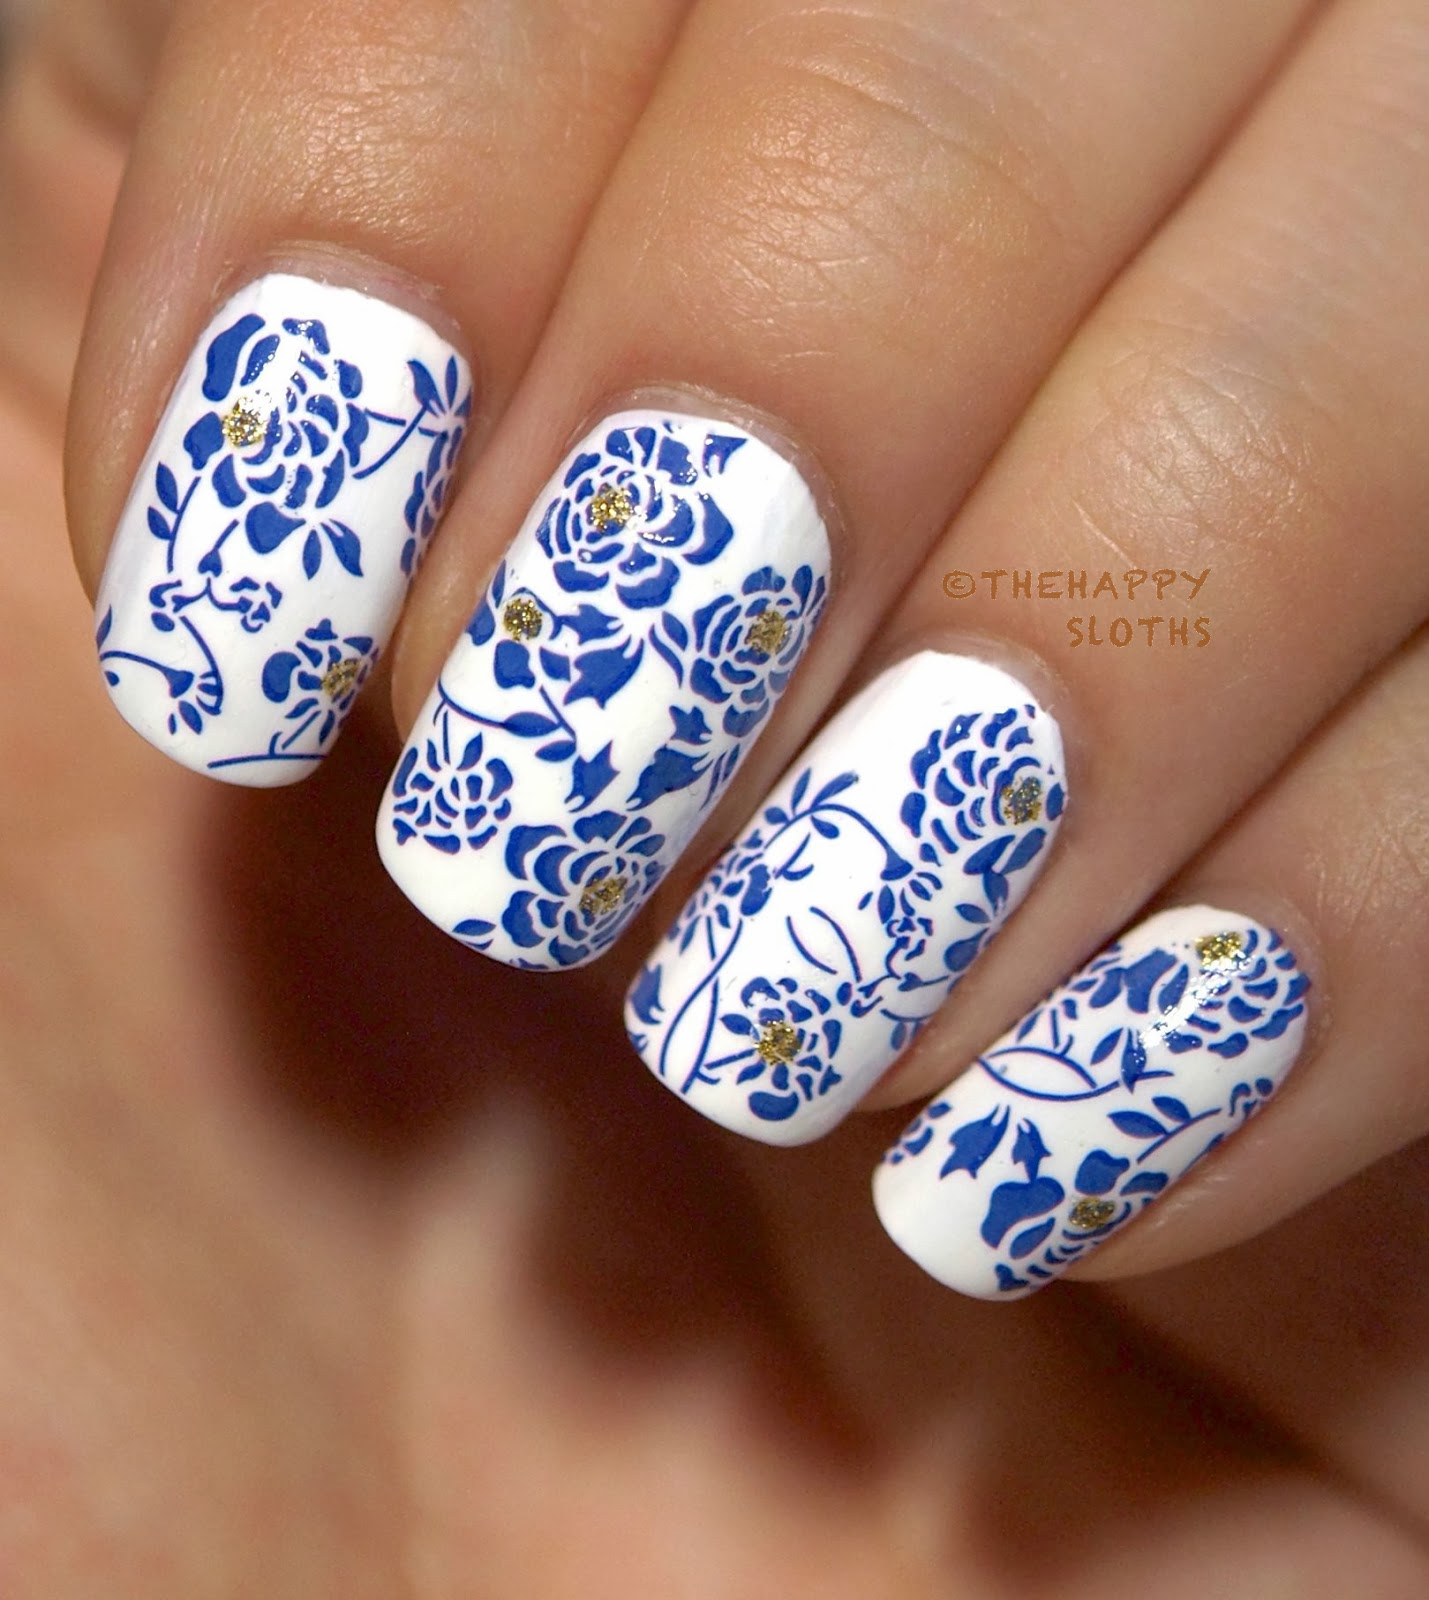 Chinese Porcelain Nails: Water Decal Manicure + $20 Born ...